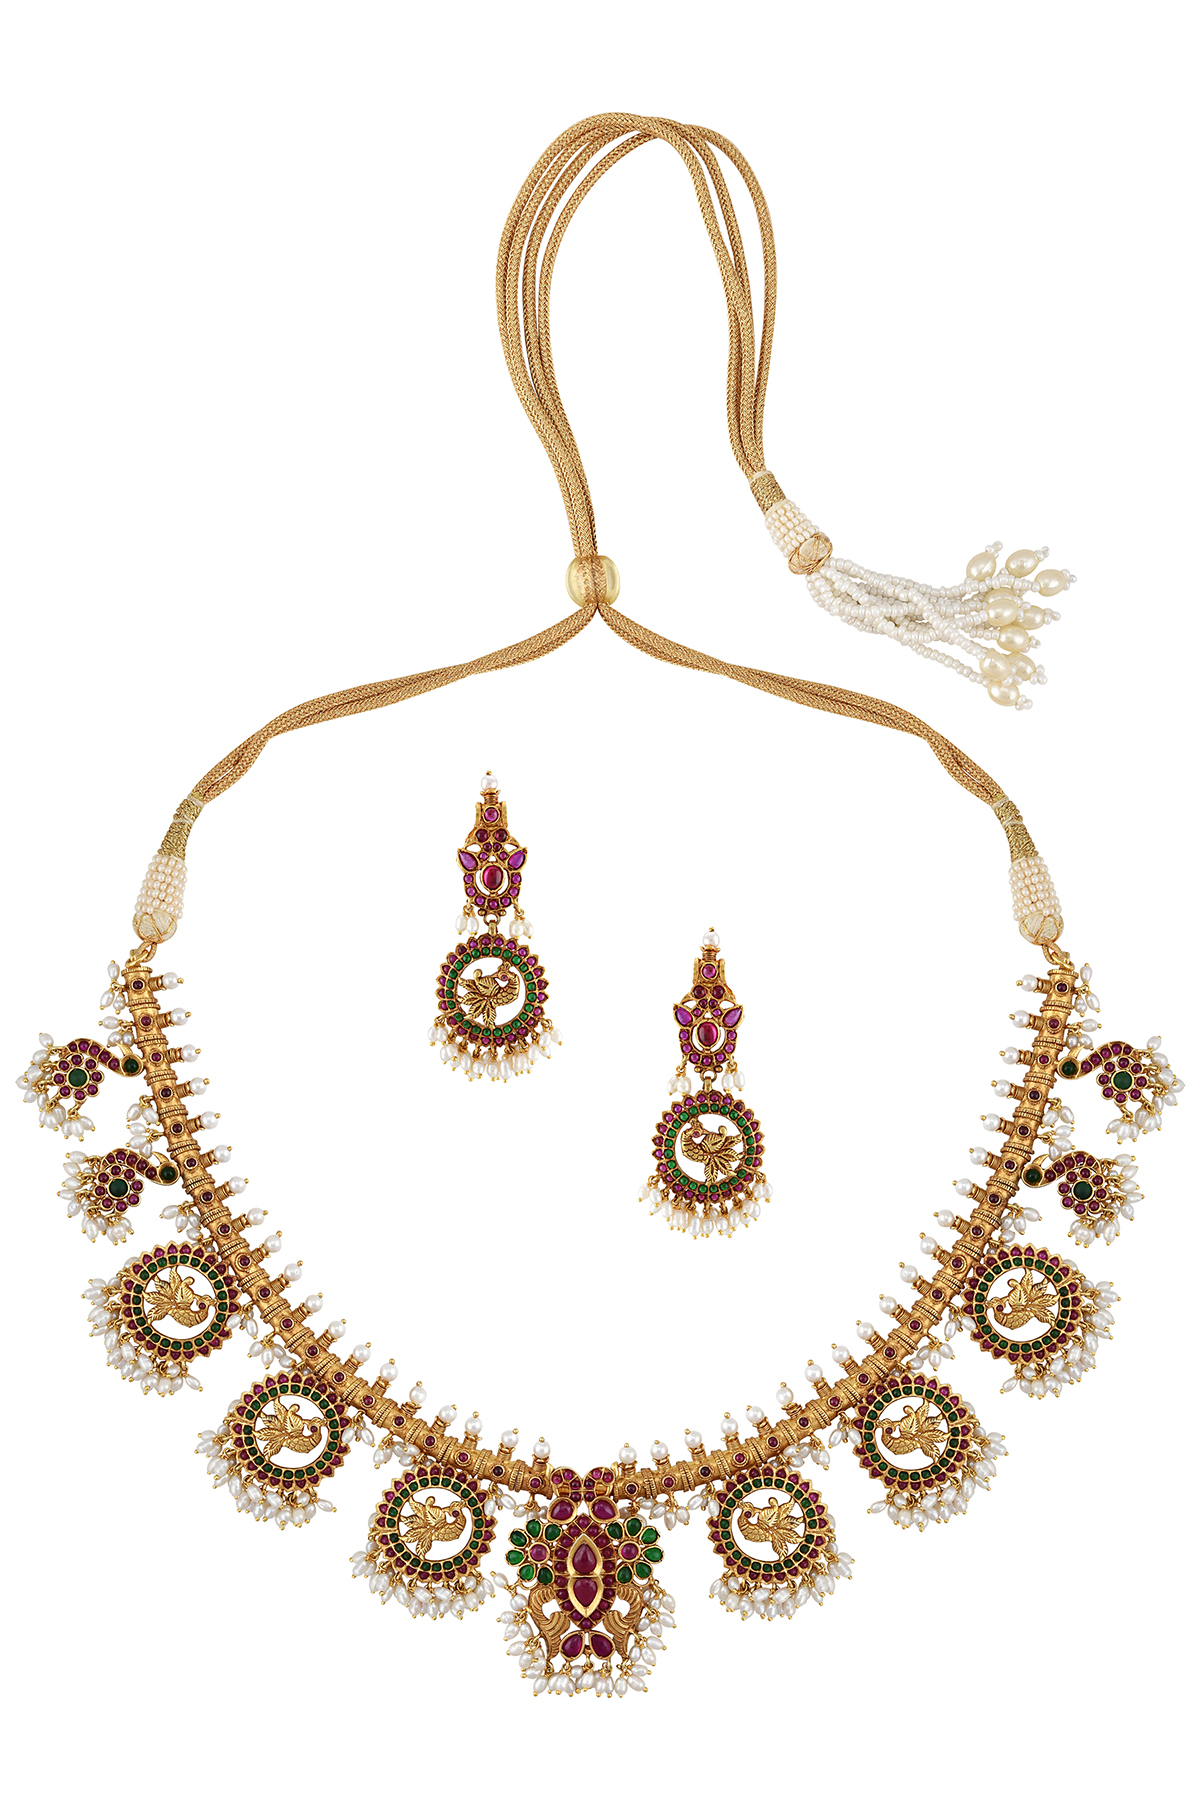 Silver Gold Plated Mayura Flower Temple Necklace Earrings Set